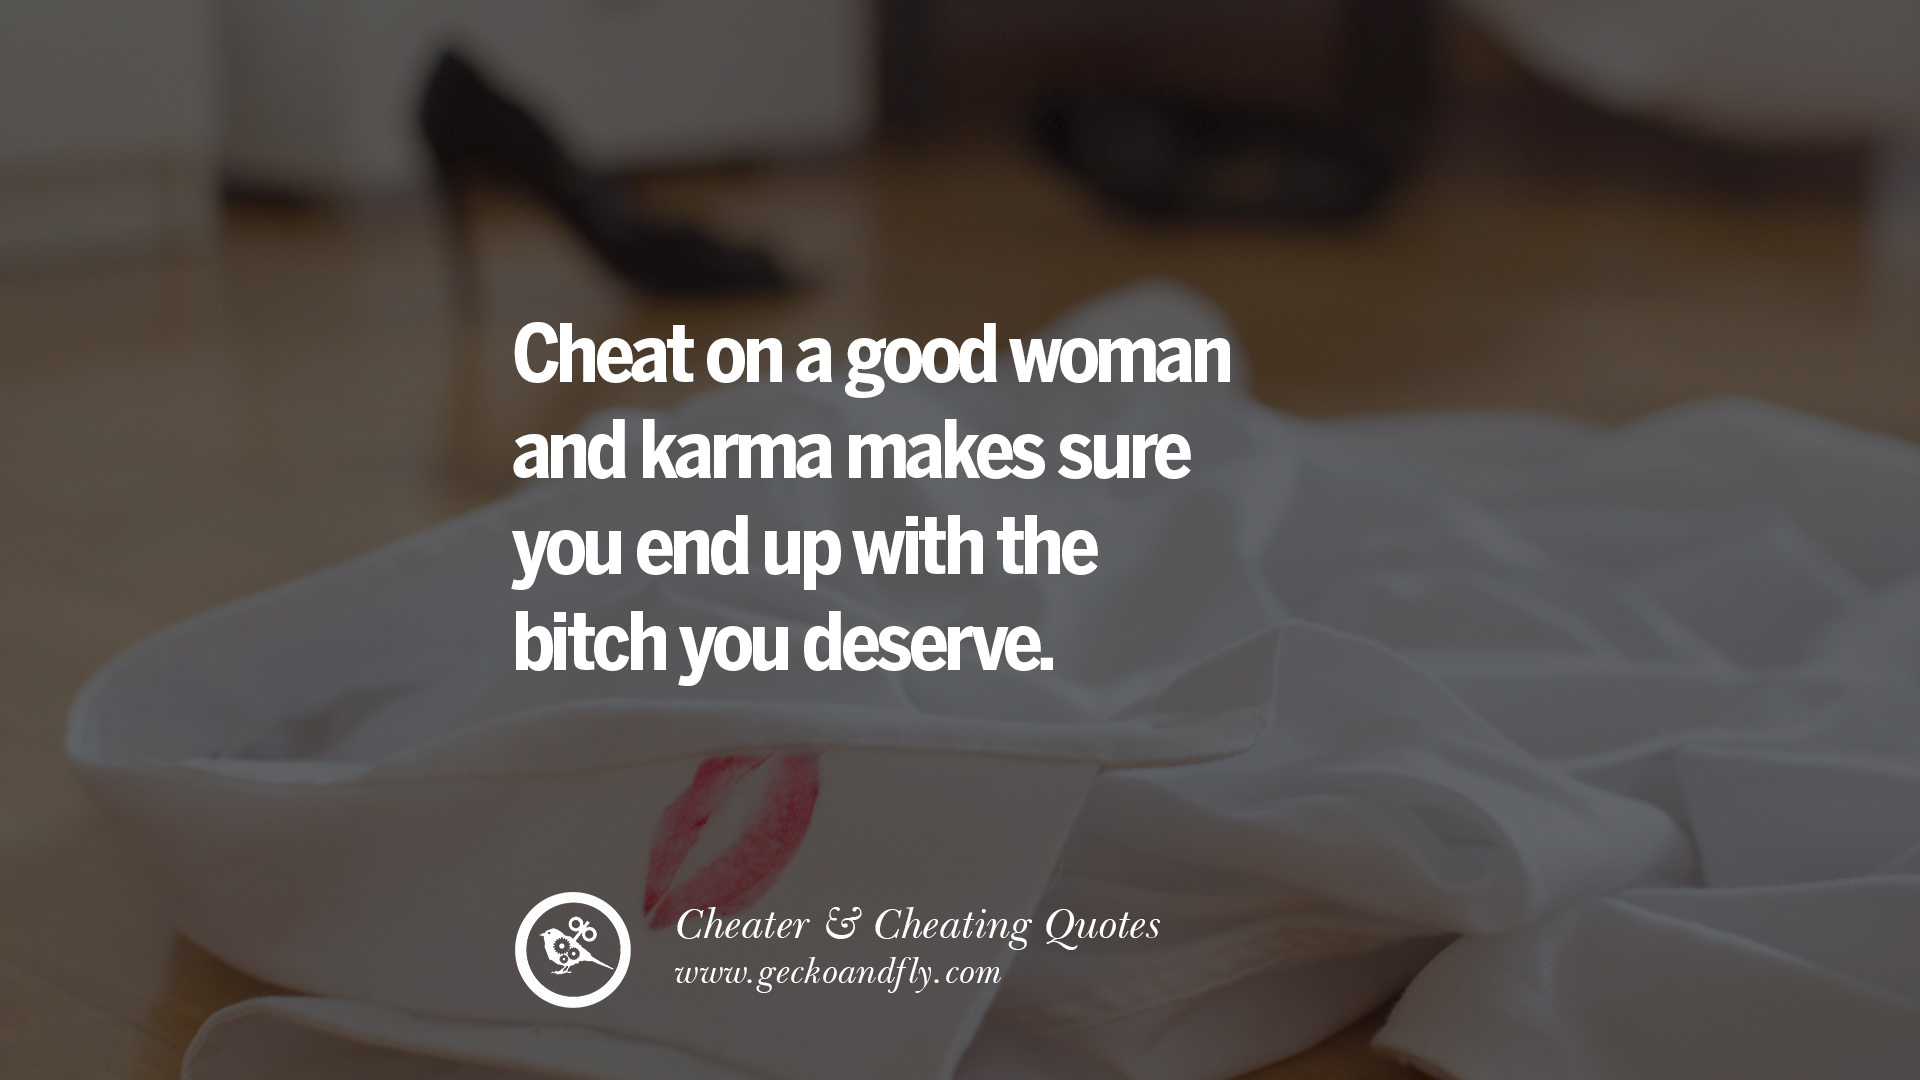 How to know if your woman is cheating